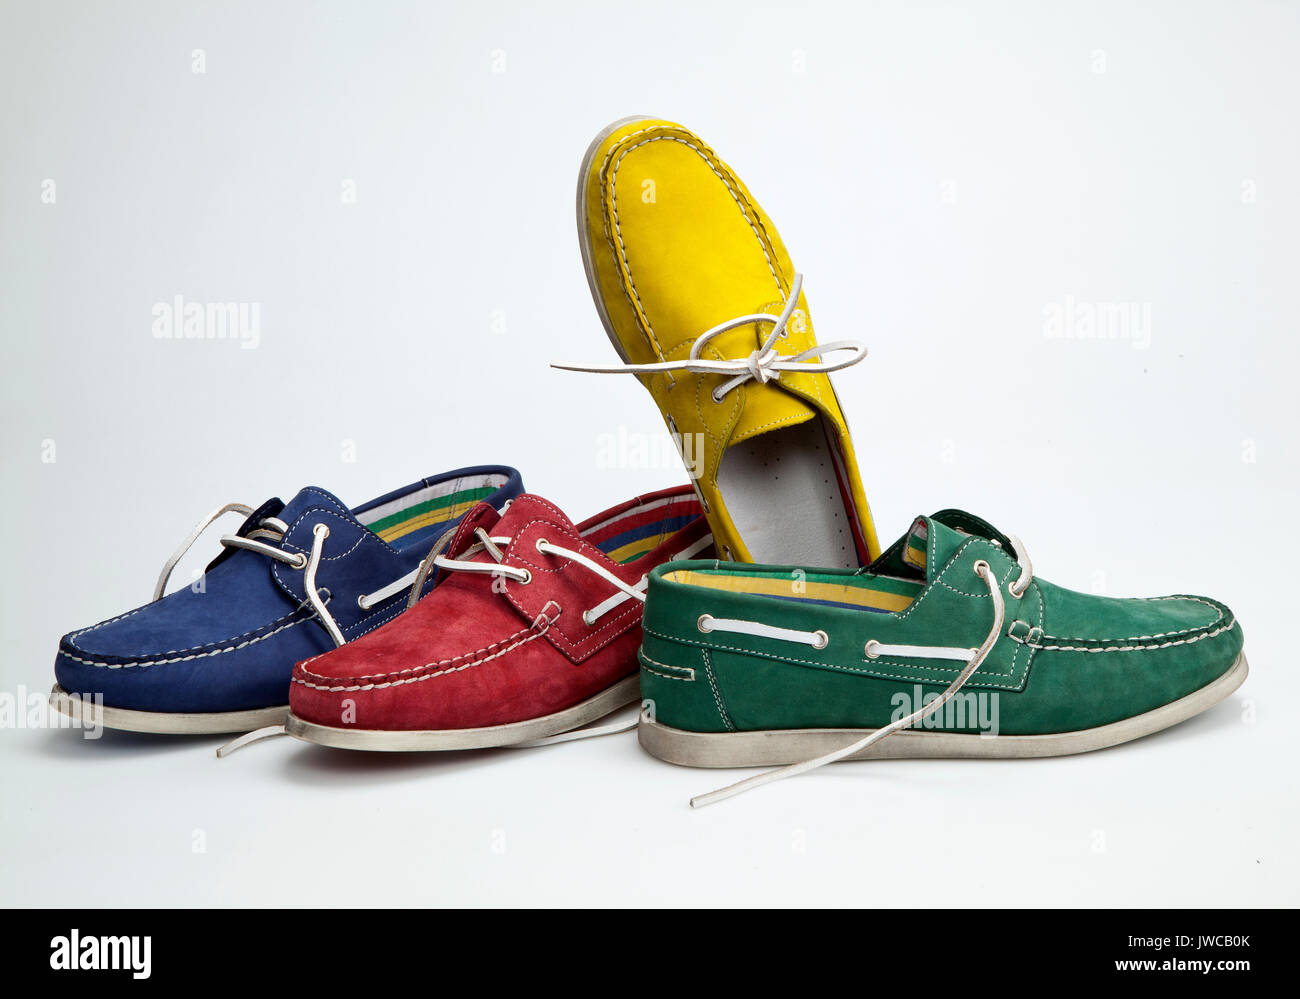 Colored shoes on white ground Stock Photo